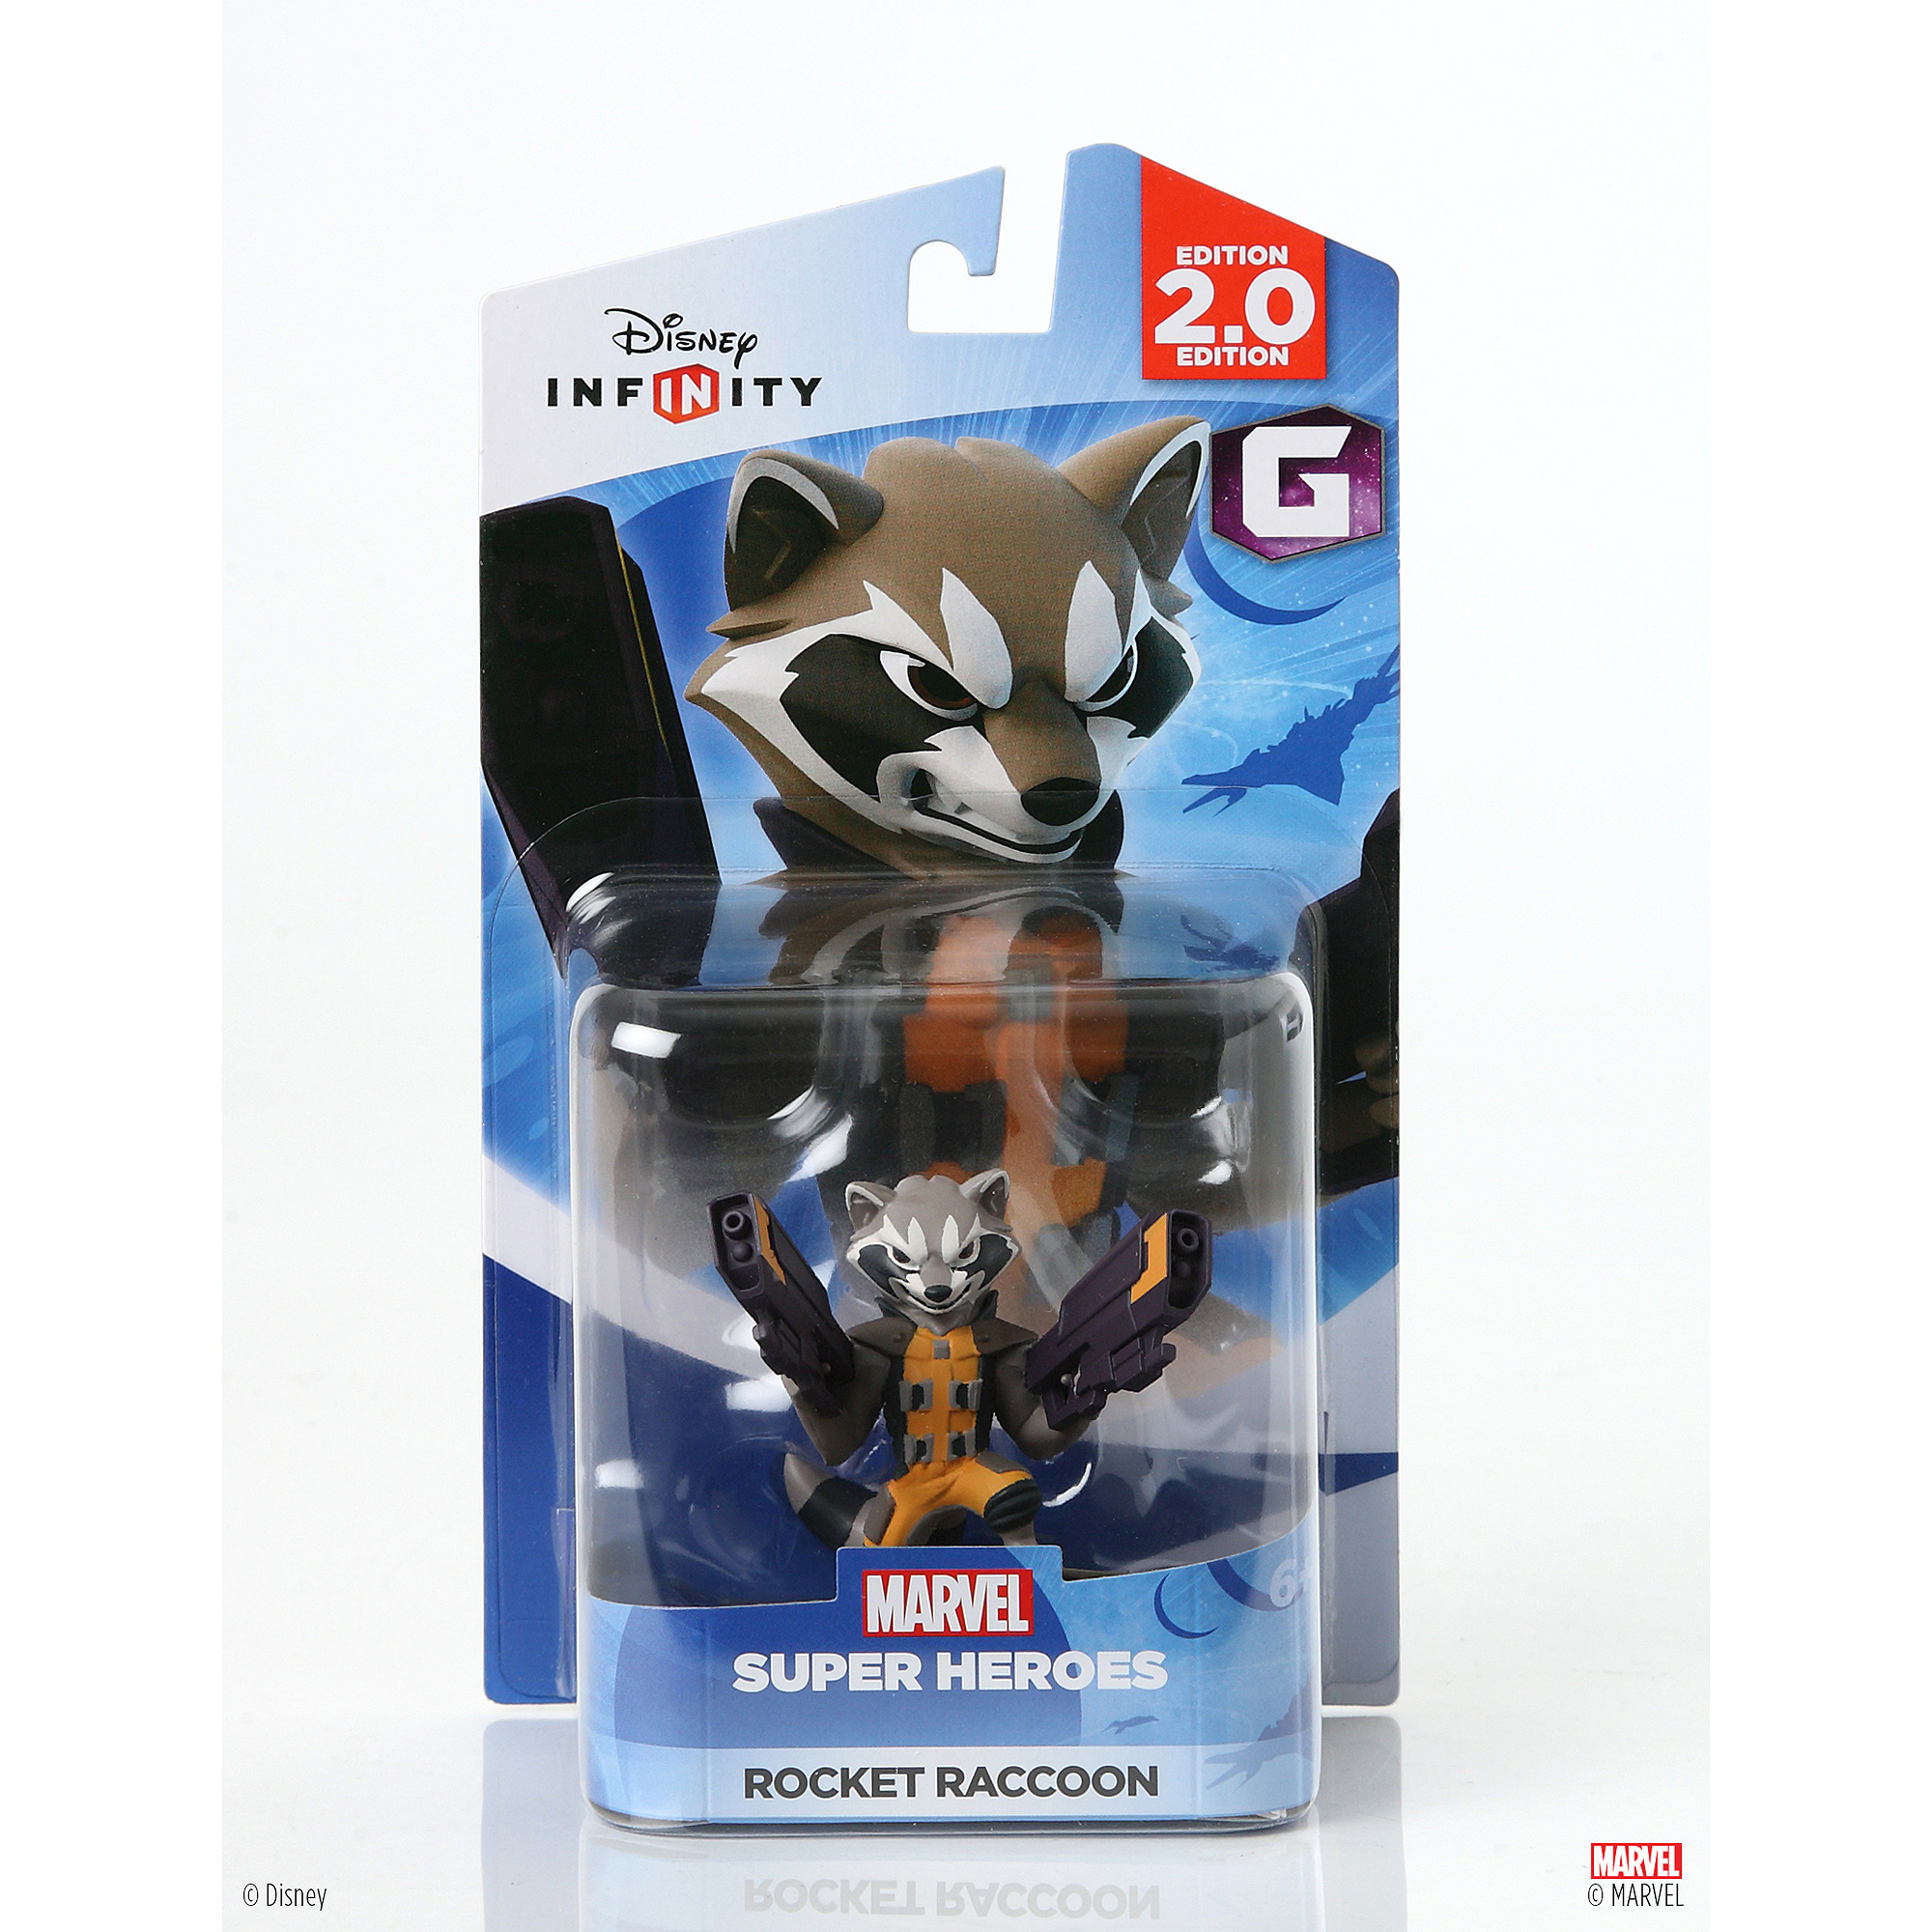 Disney Infinity: Marvel Super Heroes (2.0 Edition) Rocket Raccoon Figure (Universal)